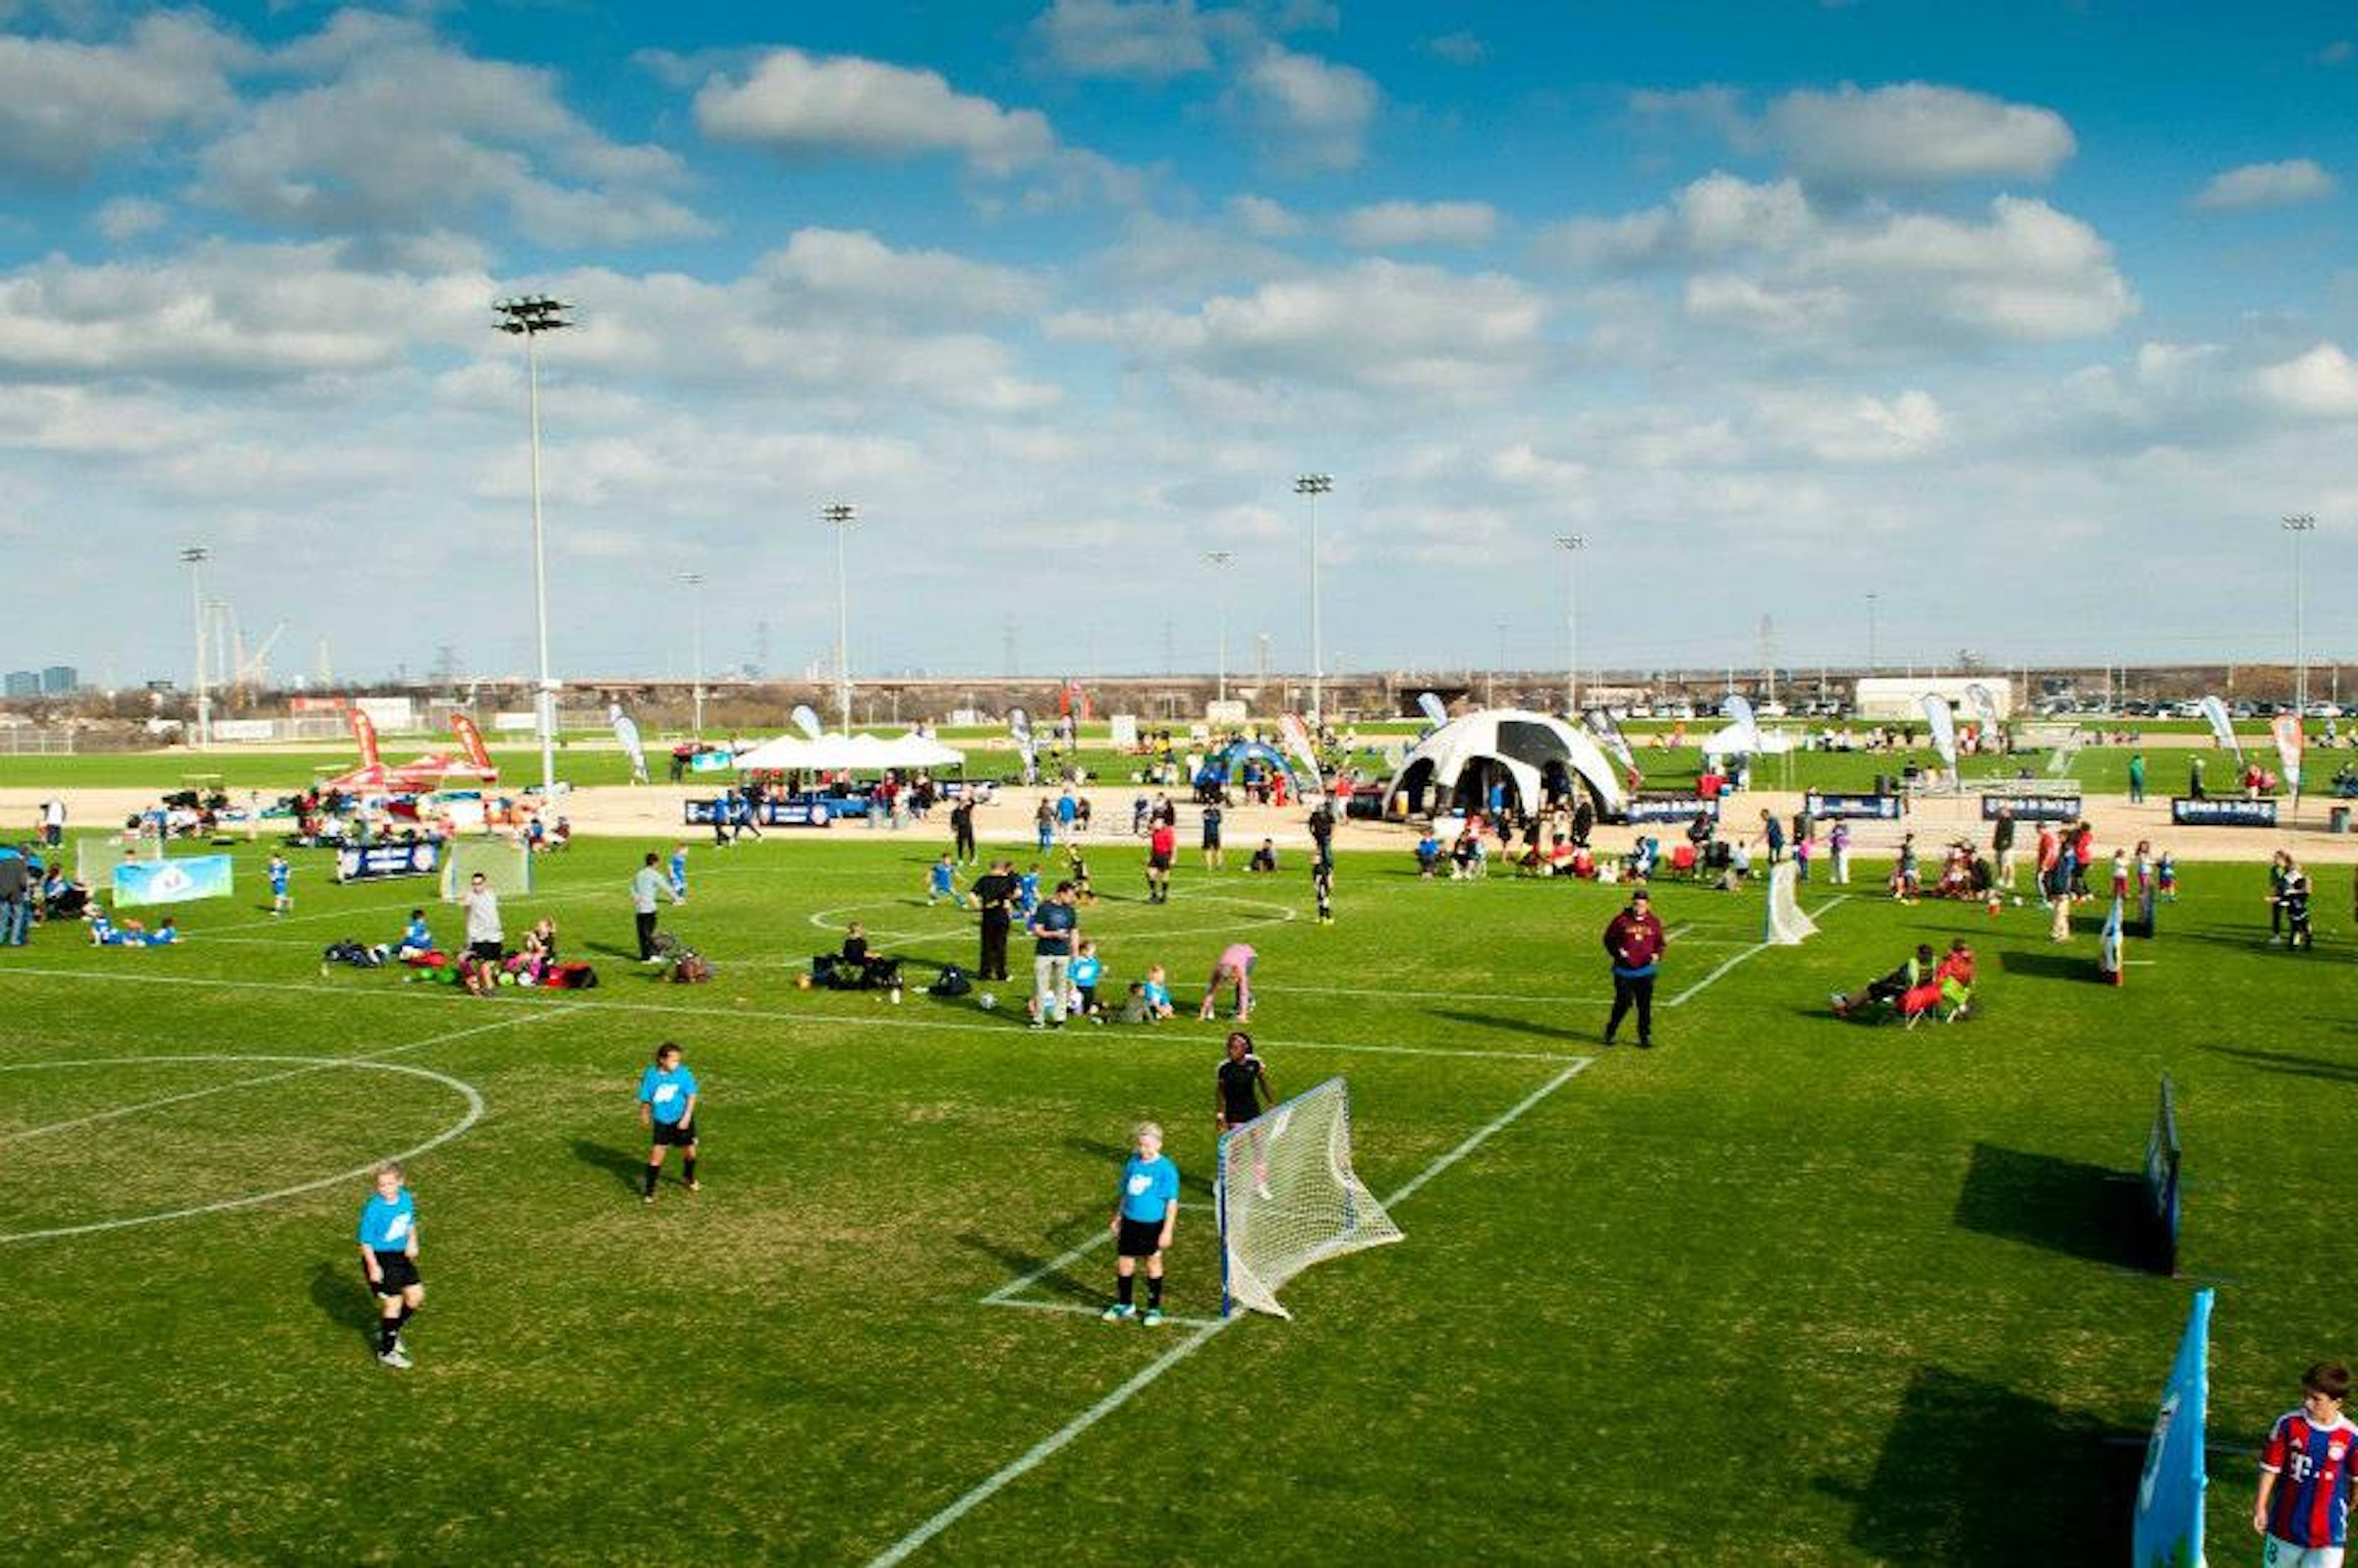 MoneyGram Soccer Park in Beyond Dallas